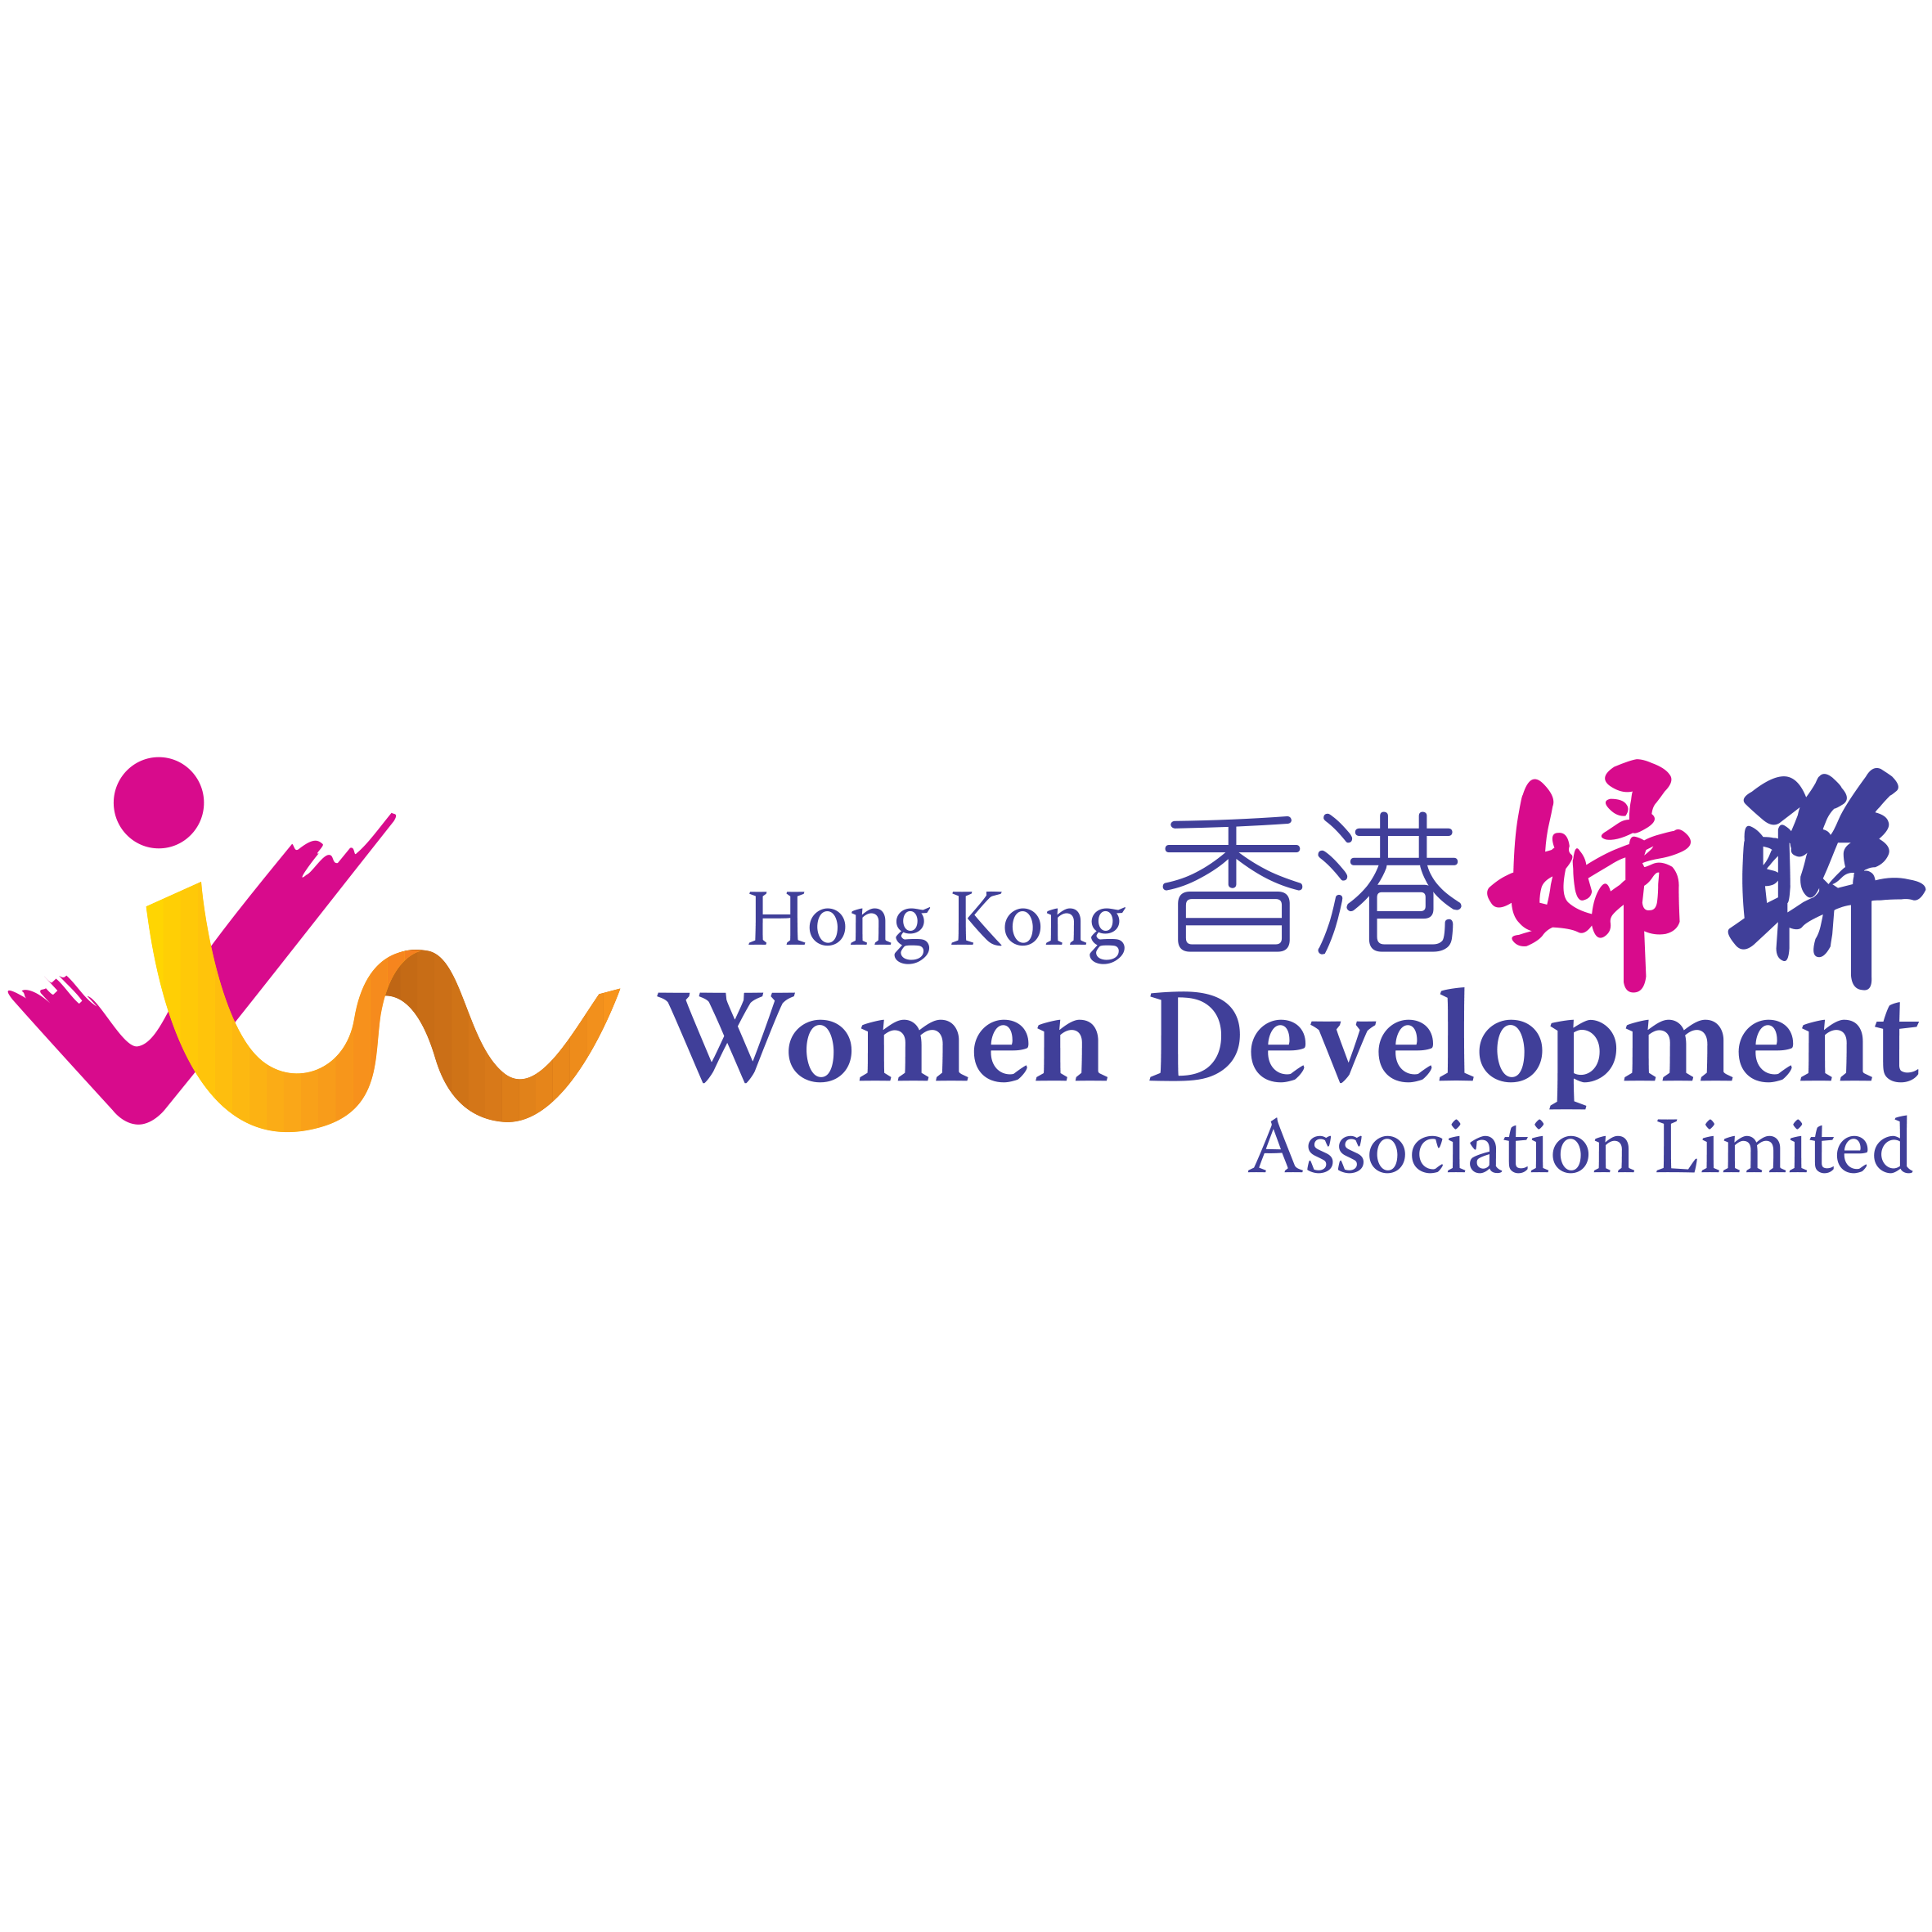 Hong Kong Women Development Association Limited